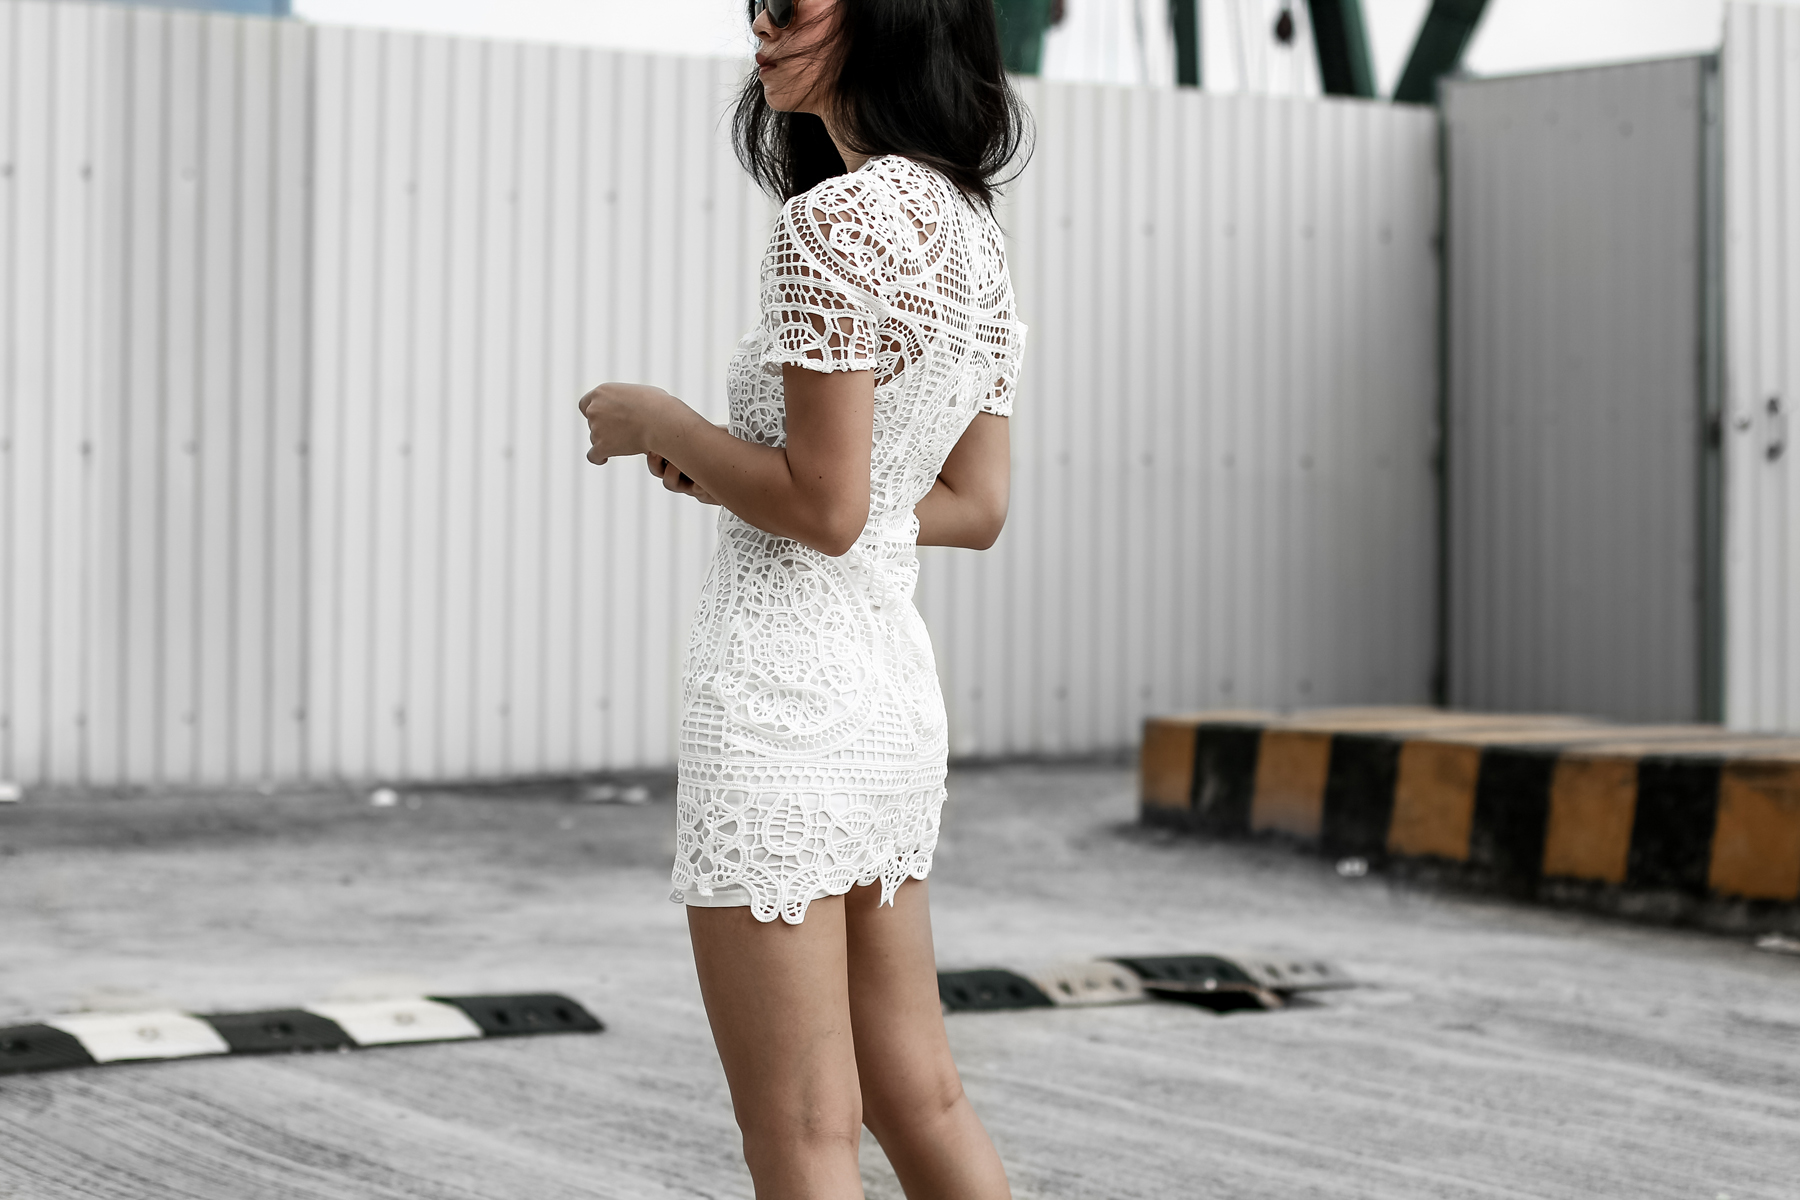 How To Style a cool white dress outfit 2